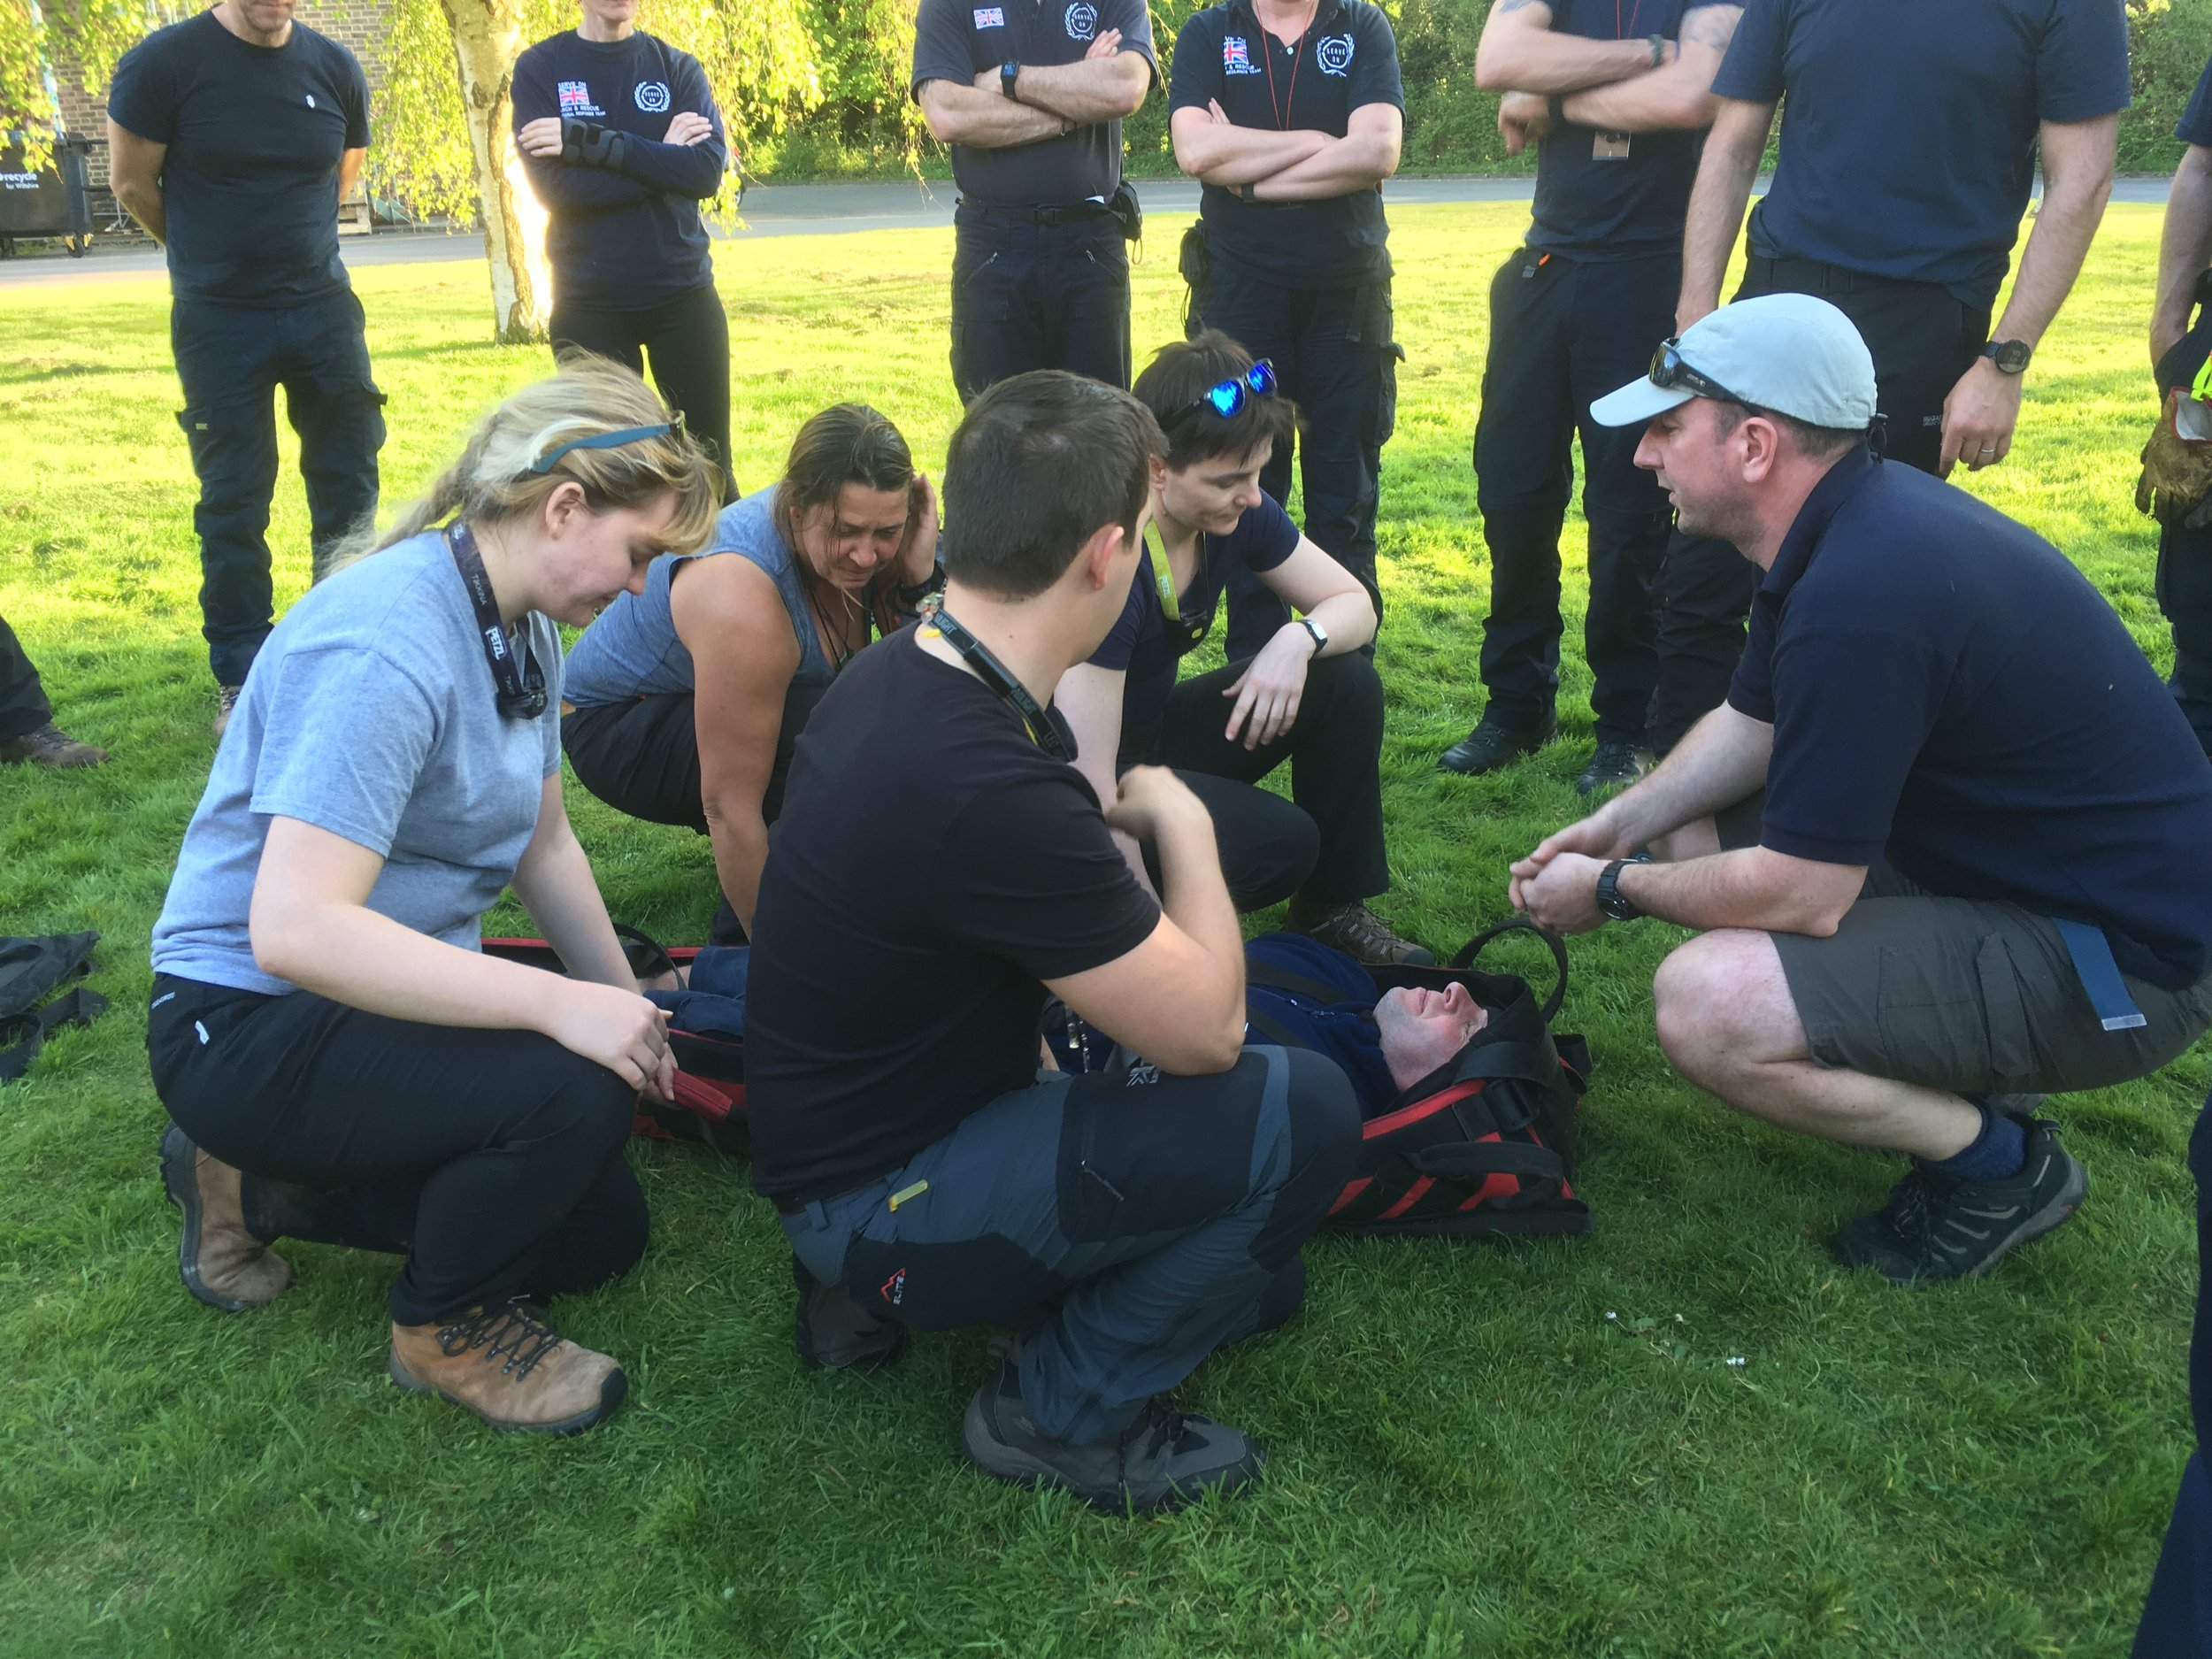 Ian instructing the Serve On International Response Team recruits on stretcher work and casualty handling.